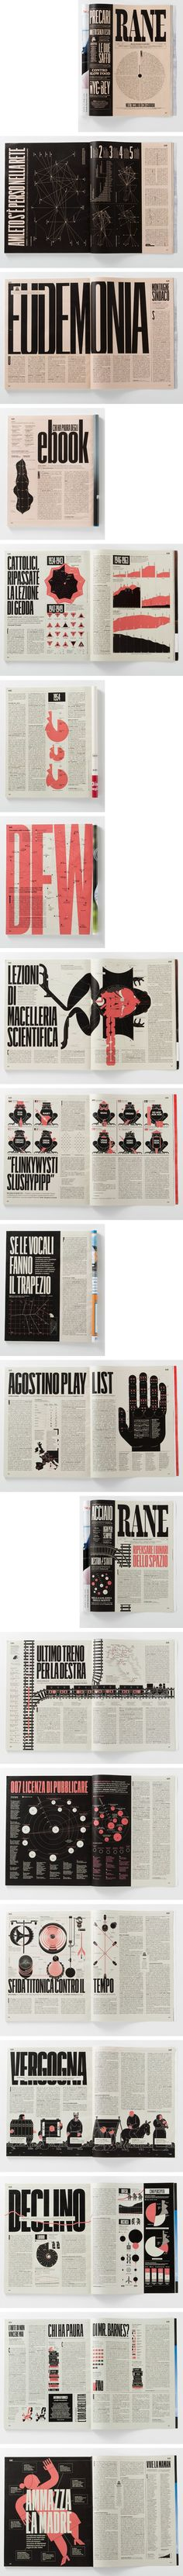 Editorial Design | Magazine Design | Like the limited colours and bold design